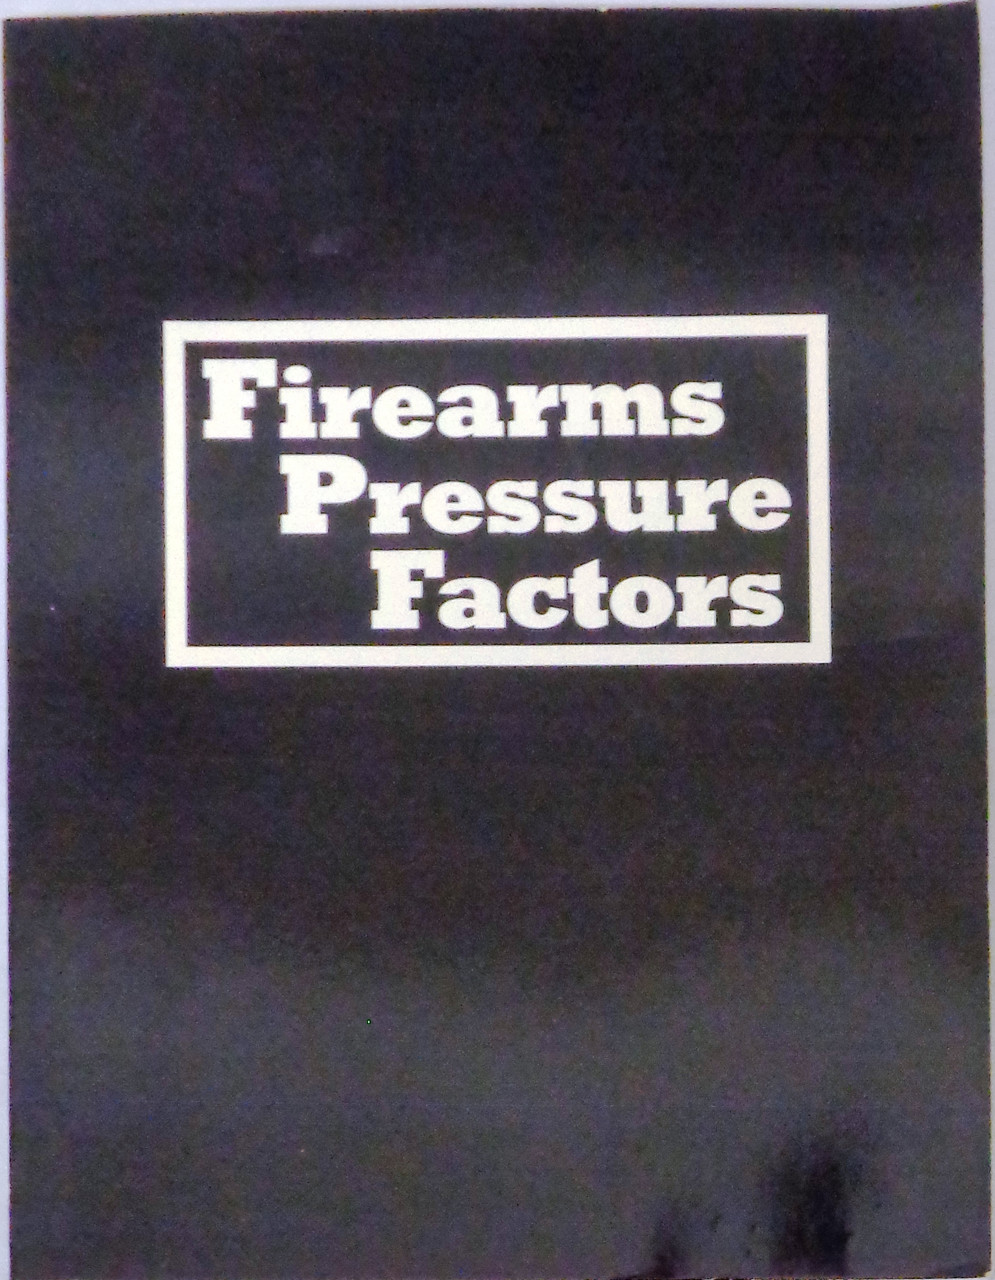 Firearms Pressure Factors published by Wolfe Publishing Company 1990